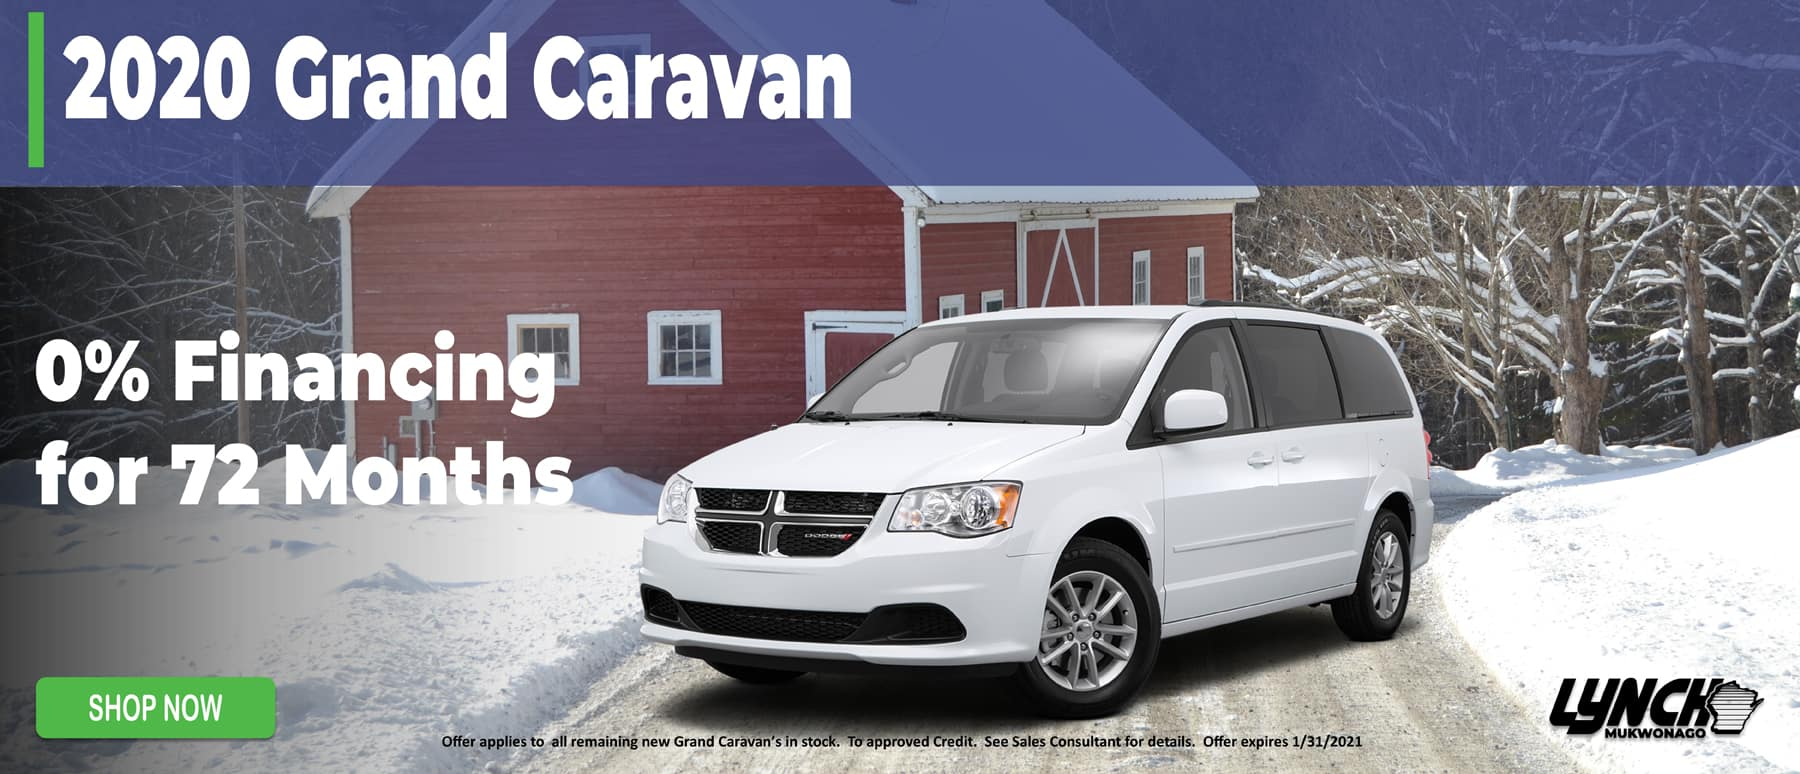 0% Financing for 72 Months on Grand Caravan in Mukwonago WI